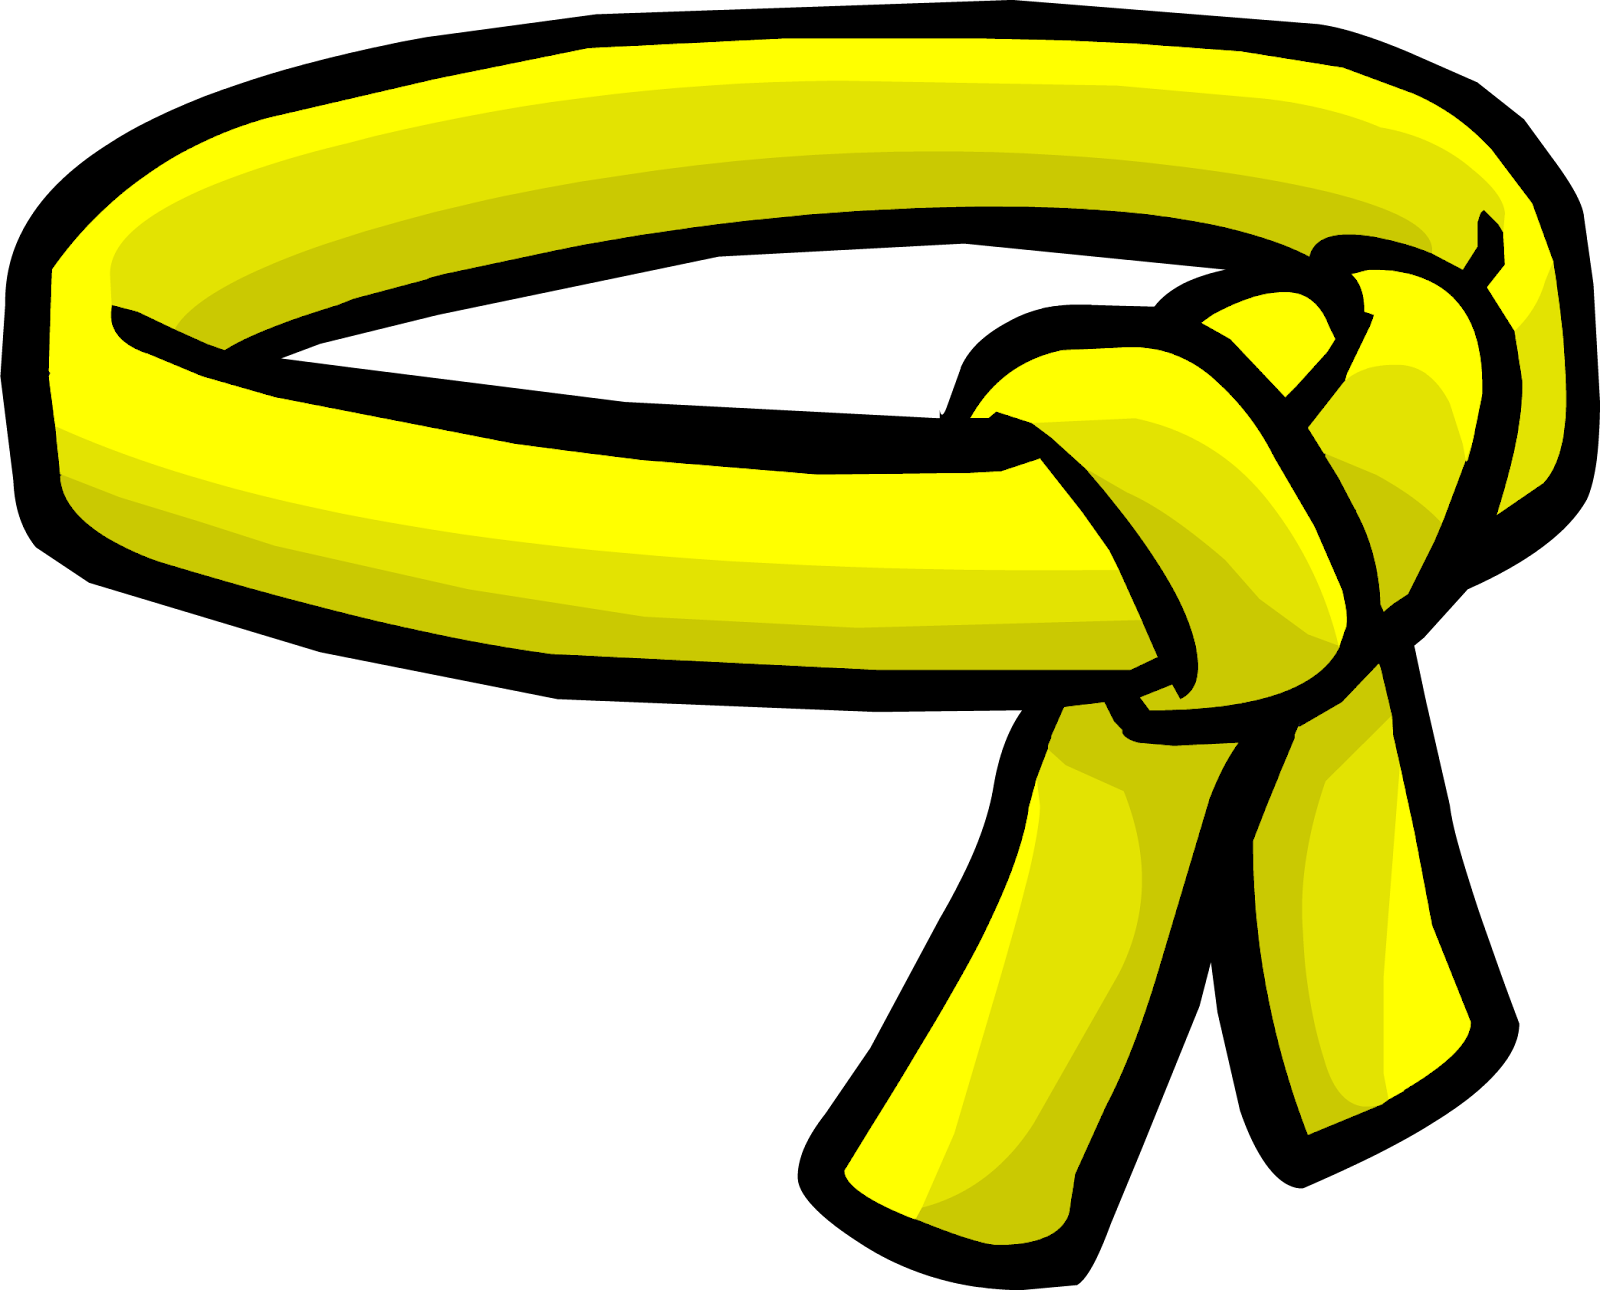 Yellow_Belt_clothing_icon_ID_4026.png